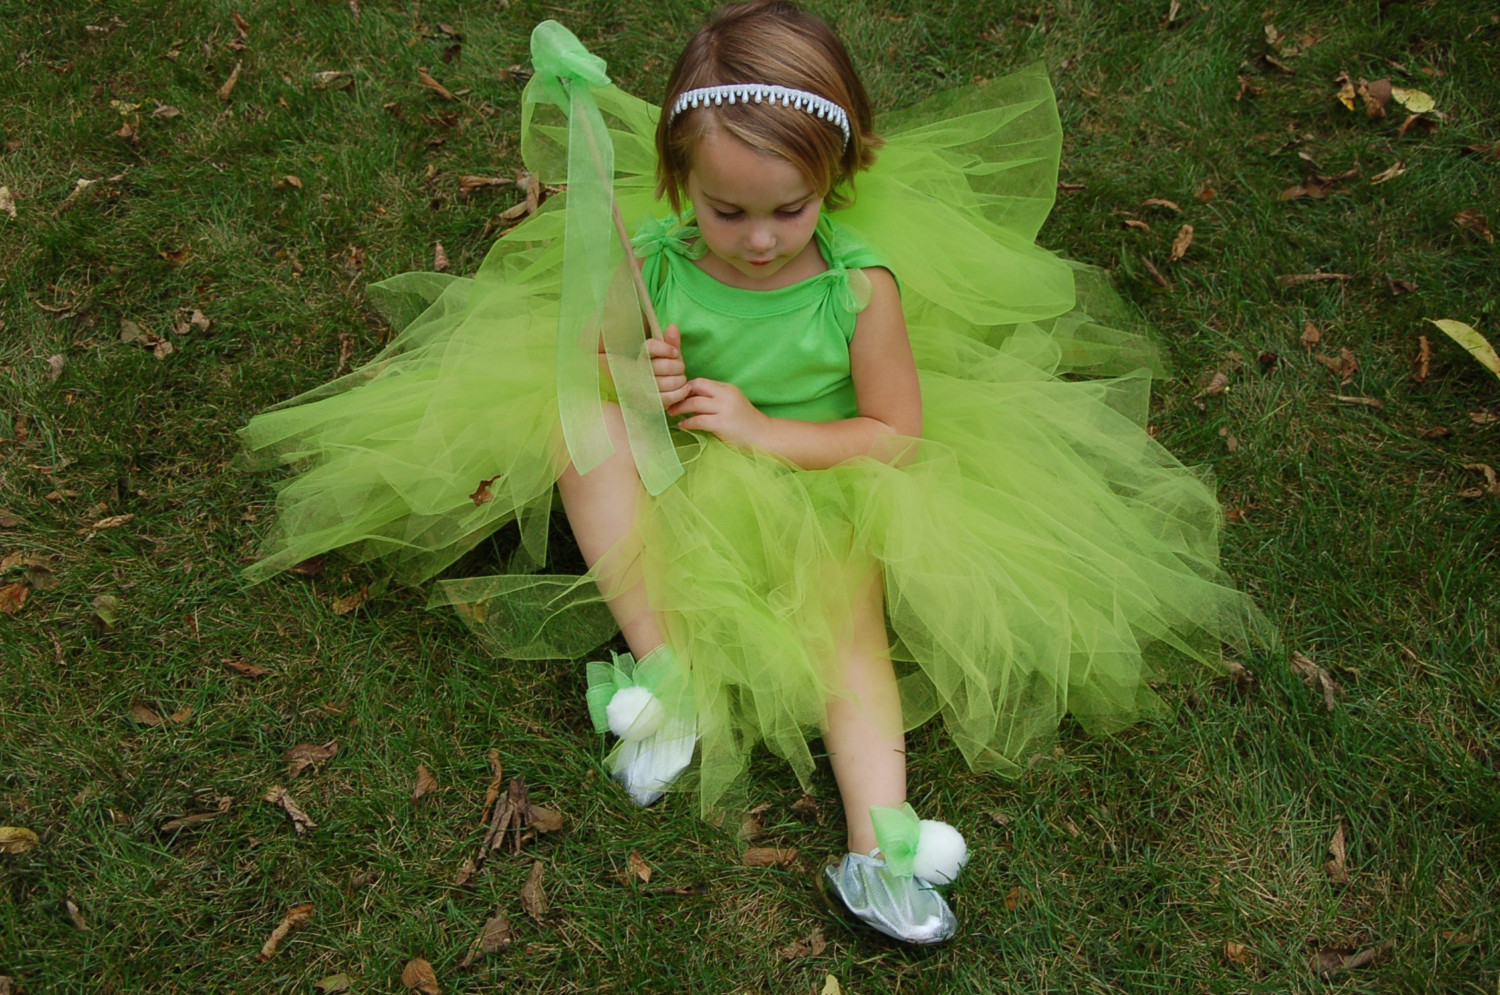 Costumi di carnevale fai da te  Trilly - Blogmamma.it 75b3bec16065